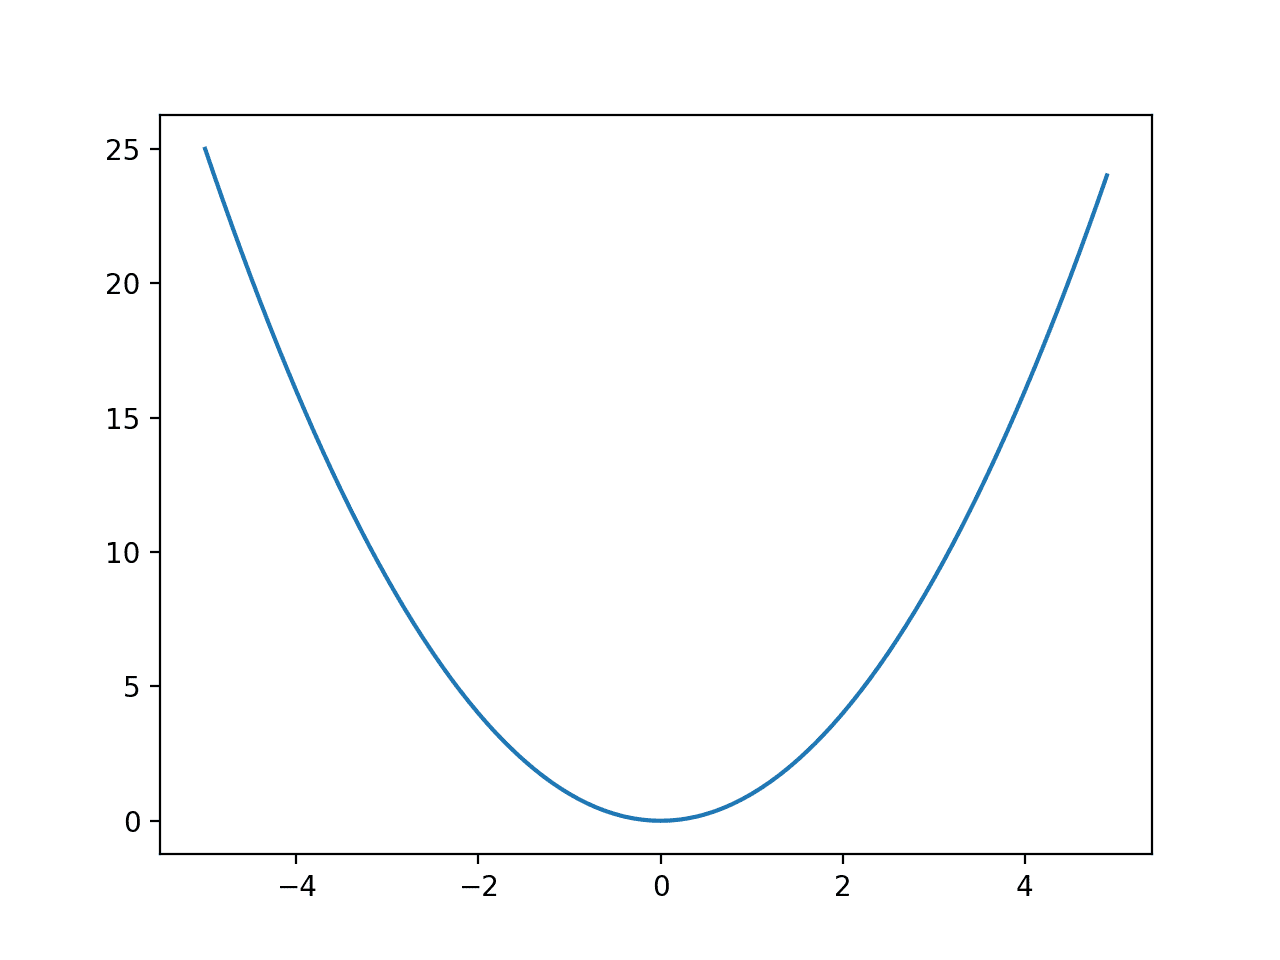 Line Plot of a One-Dimensional Function